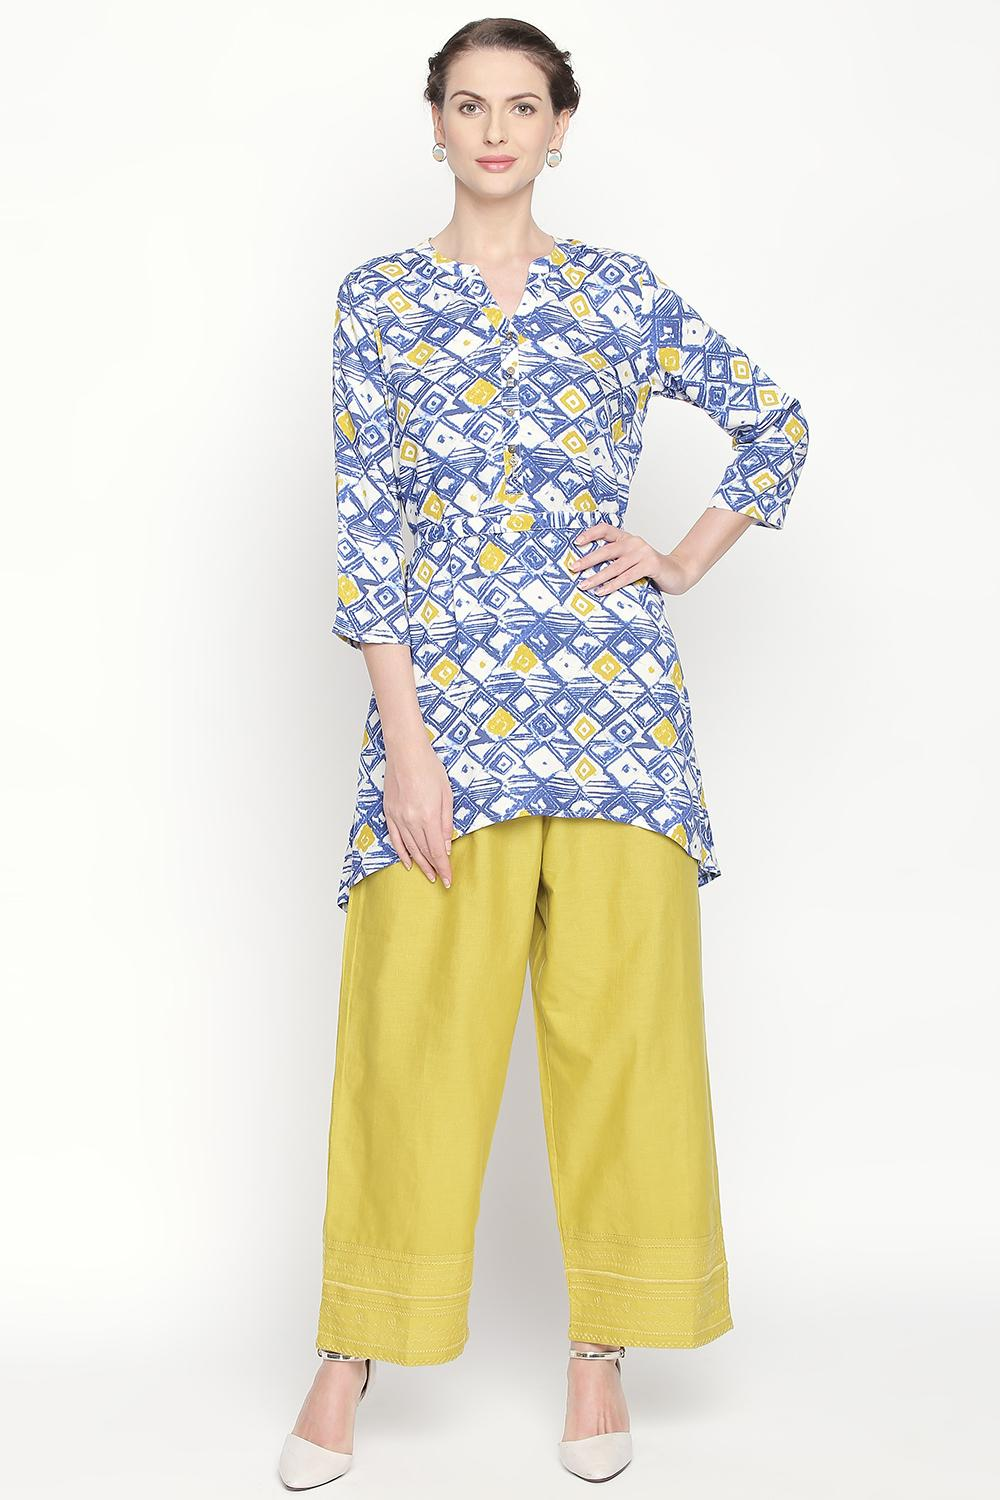 09af3236c65 Shop Pantaloons Tunics for Women - Shop Online | Pantaloons.com